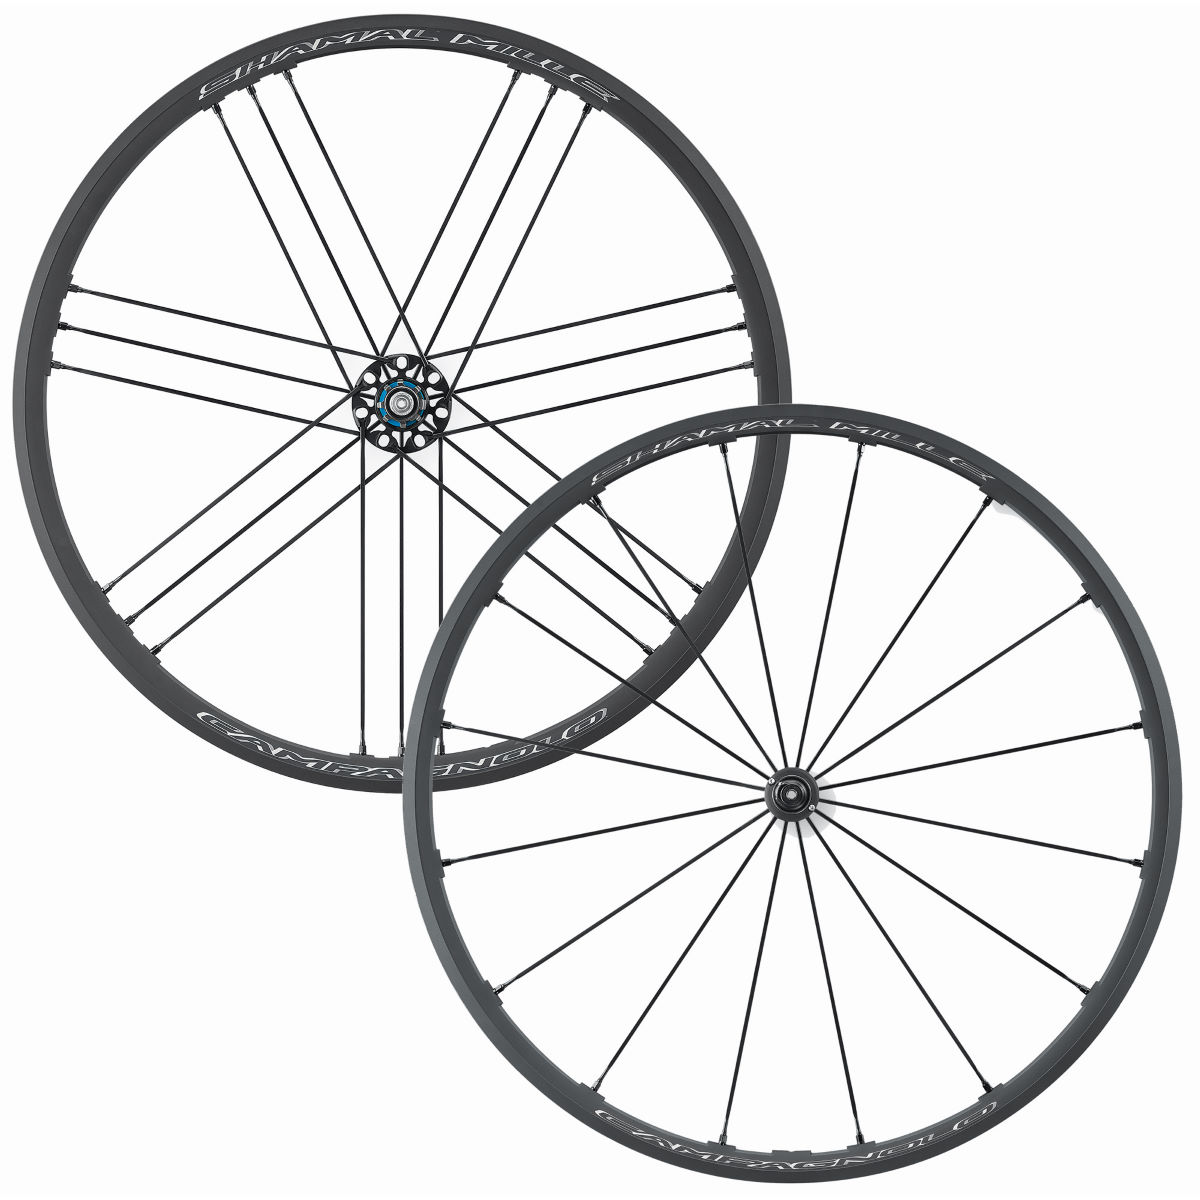 Campagnolo Shamal Mille C17 Clincher Wheelset Performance Wheels